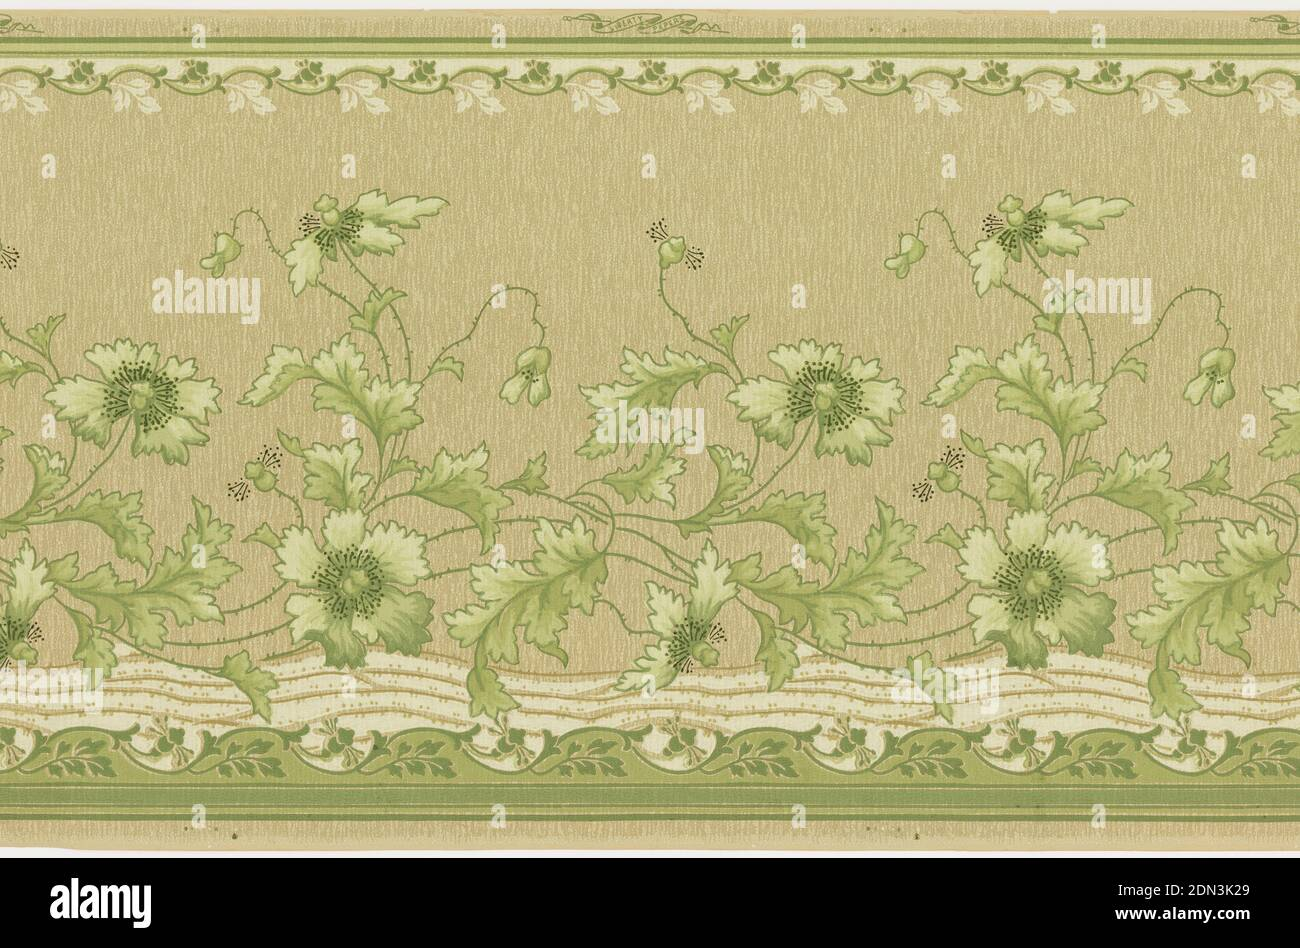 Frieze, Liberty Wall Paper Company, Schuylerville, New York, Machine-printed paper, Horizontal ribbon-like stripe with lines crisscrossing horizontallyally inside it, and with green flower vines twisting above them. Background has an overall wavy line and dot pattern. Top and bottom have bands of waving floral vines. Ground is beige. Printed in beige, green, and cream., Printed in selvedge: 'Standard Papers', Schuylerville, New York, USA, 1905–1915, Wallcoverings, Frieze Stock Photo